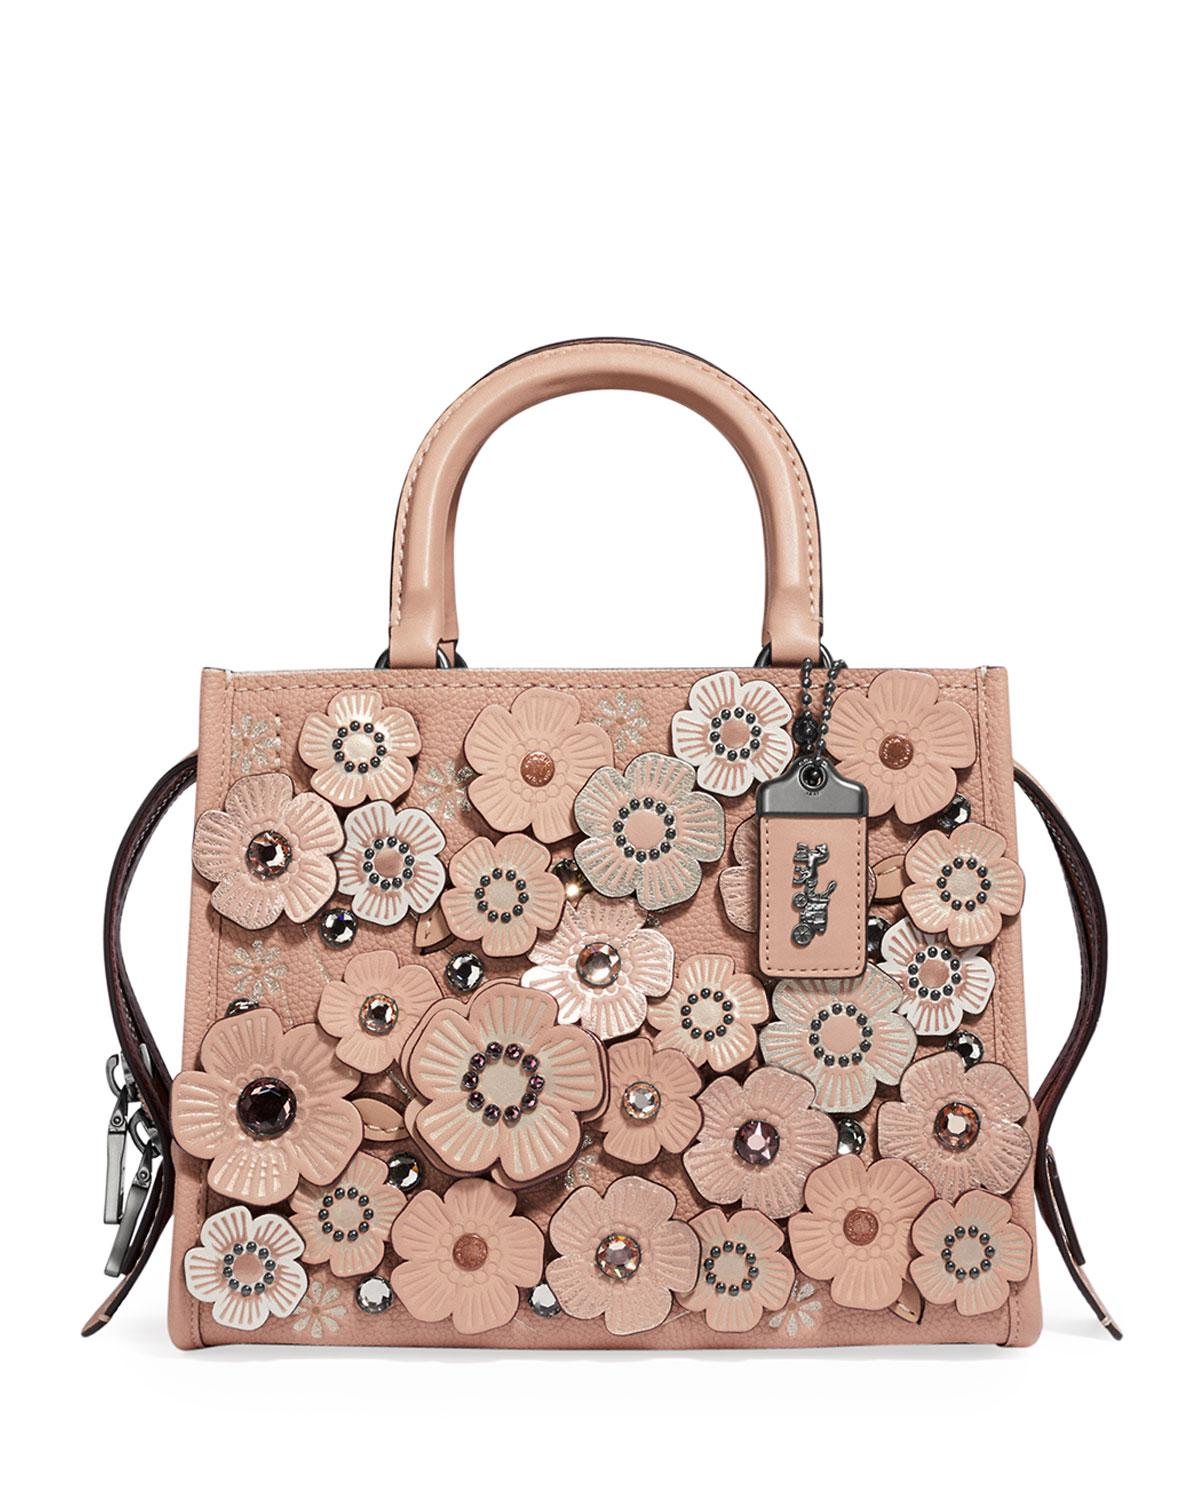 Lyst - COACH Rogue 25 Crystal Tea Rose Tote Bag in Pink f9ad7b9539